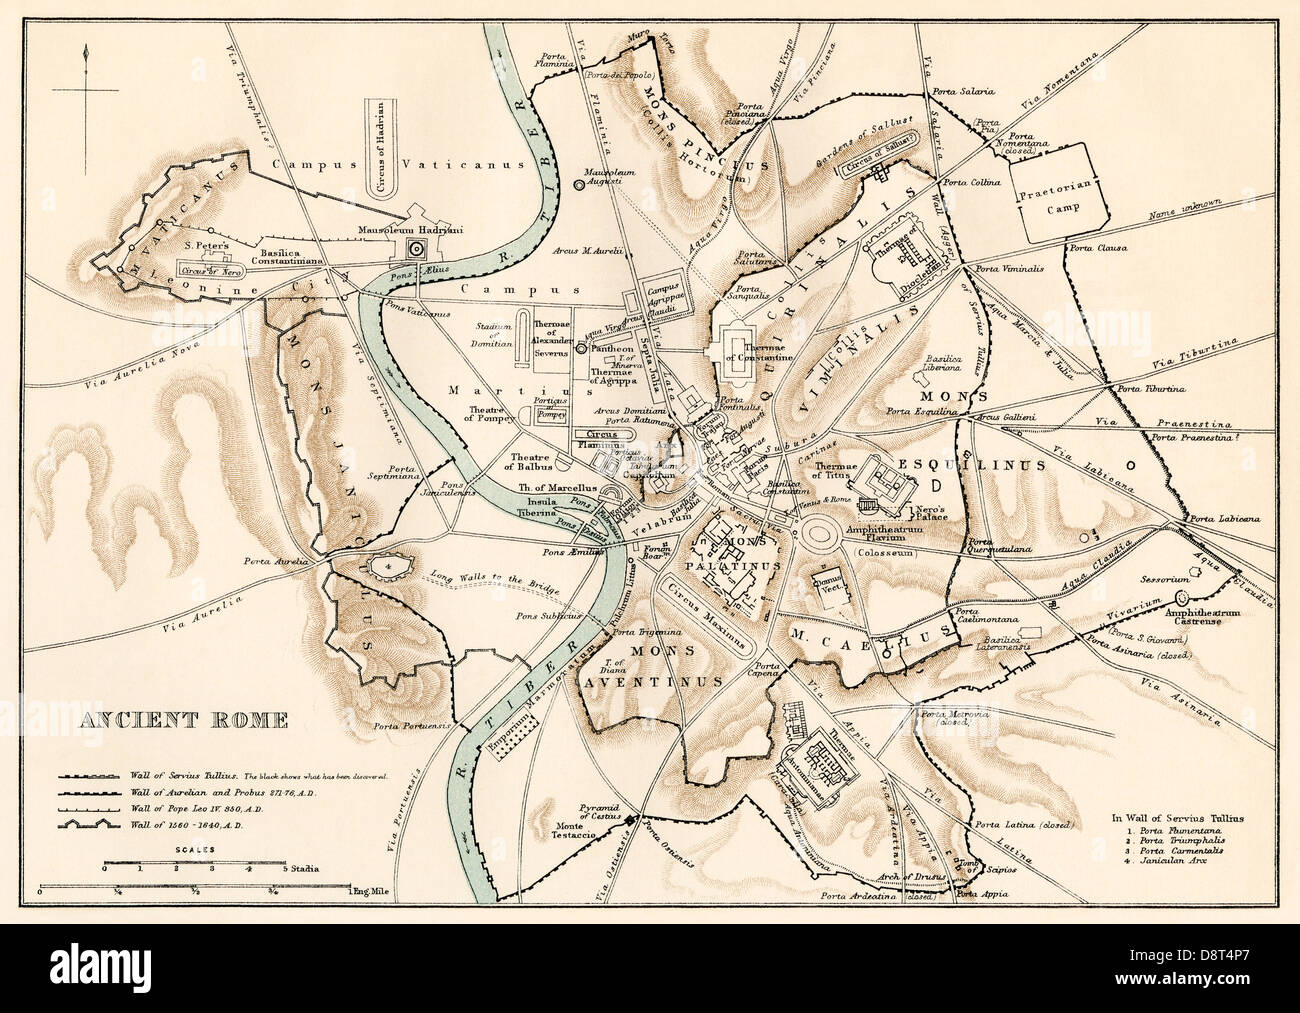 City plan of ancient Rome. Color lithograph - Stock Image